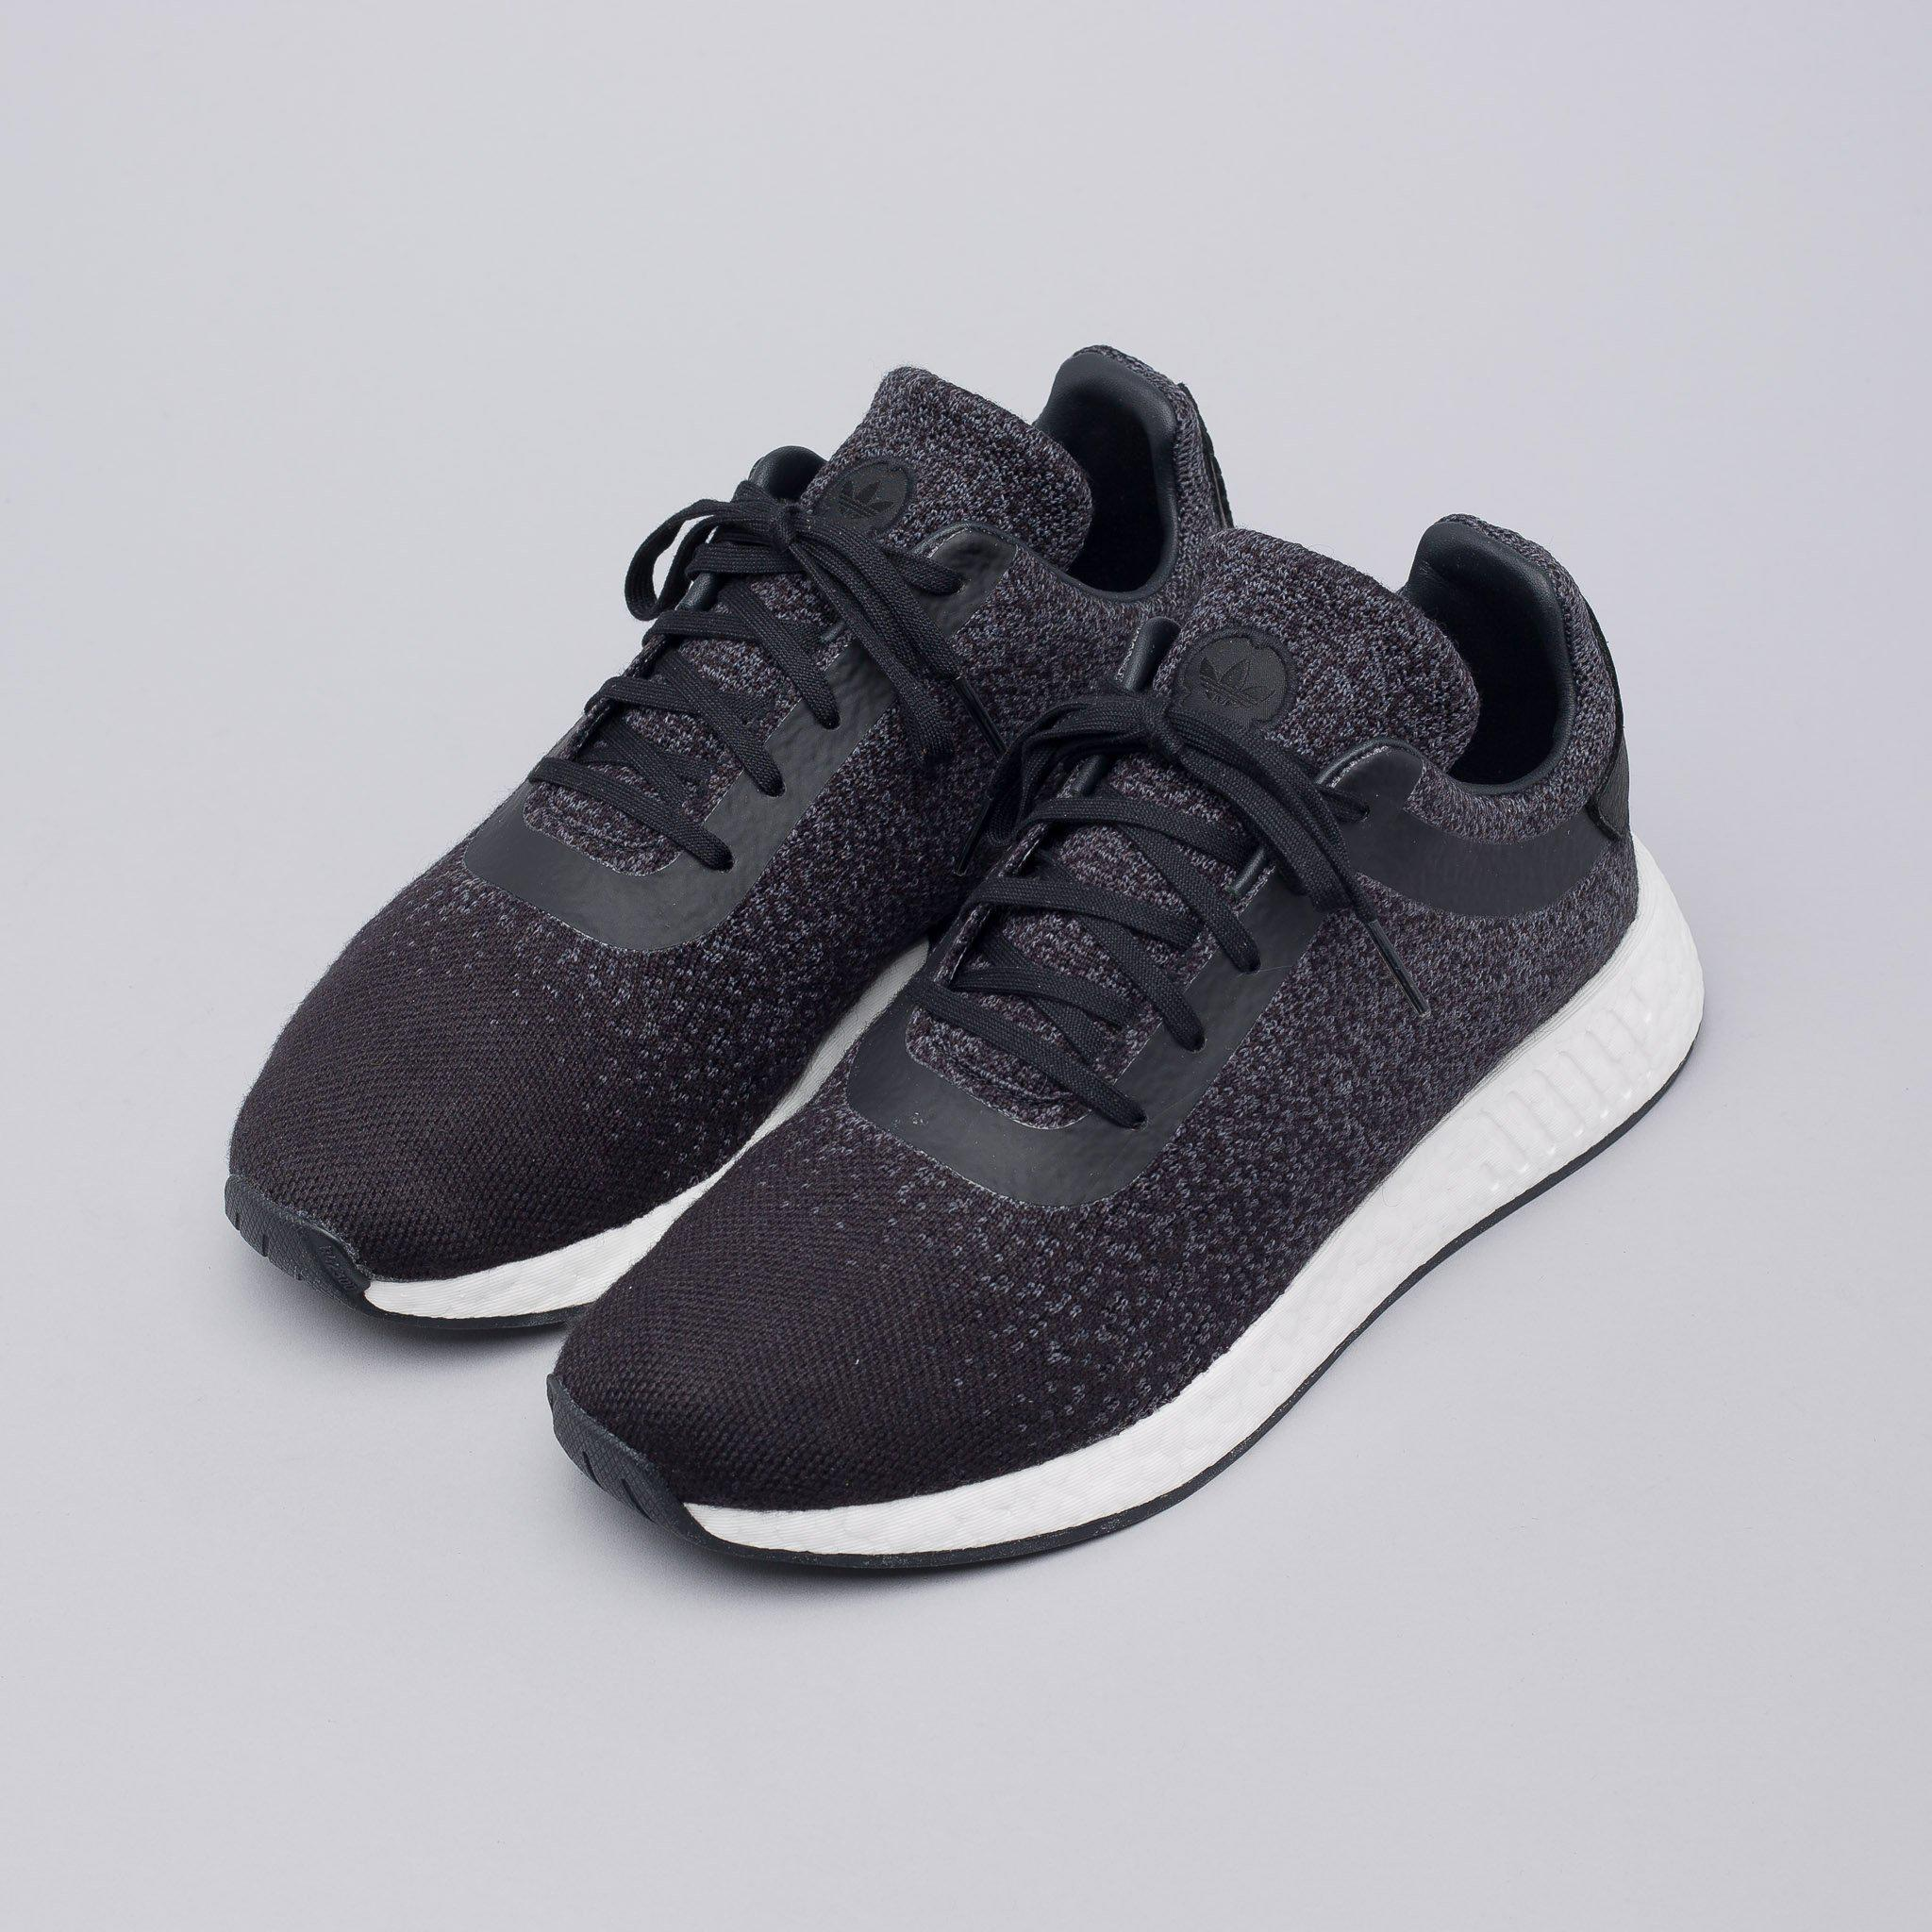 the latest 27918 816a5 Lyst - adidas X Wings+horns Nmd R2 Primeknit Core Blackutili